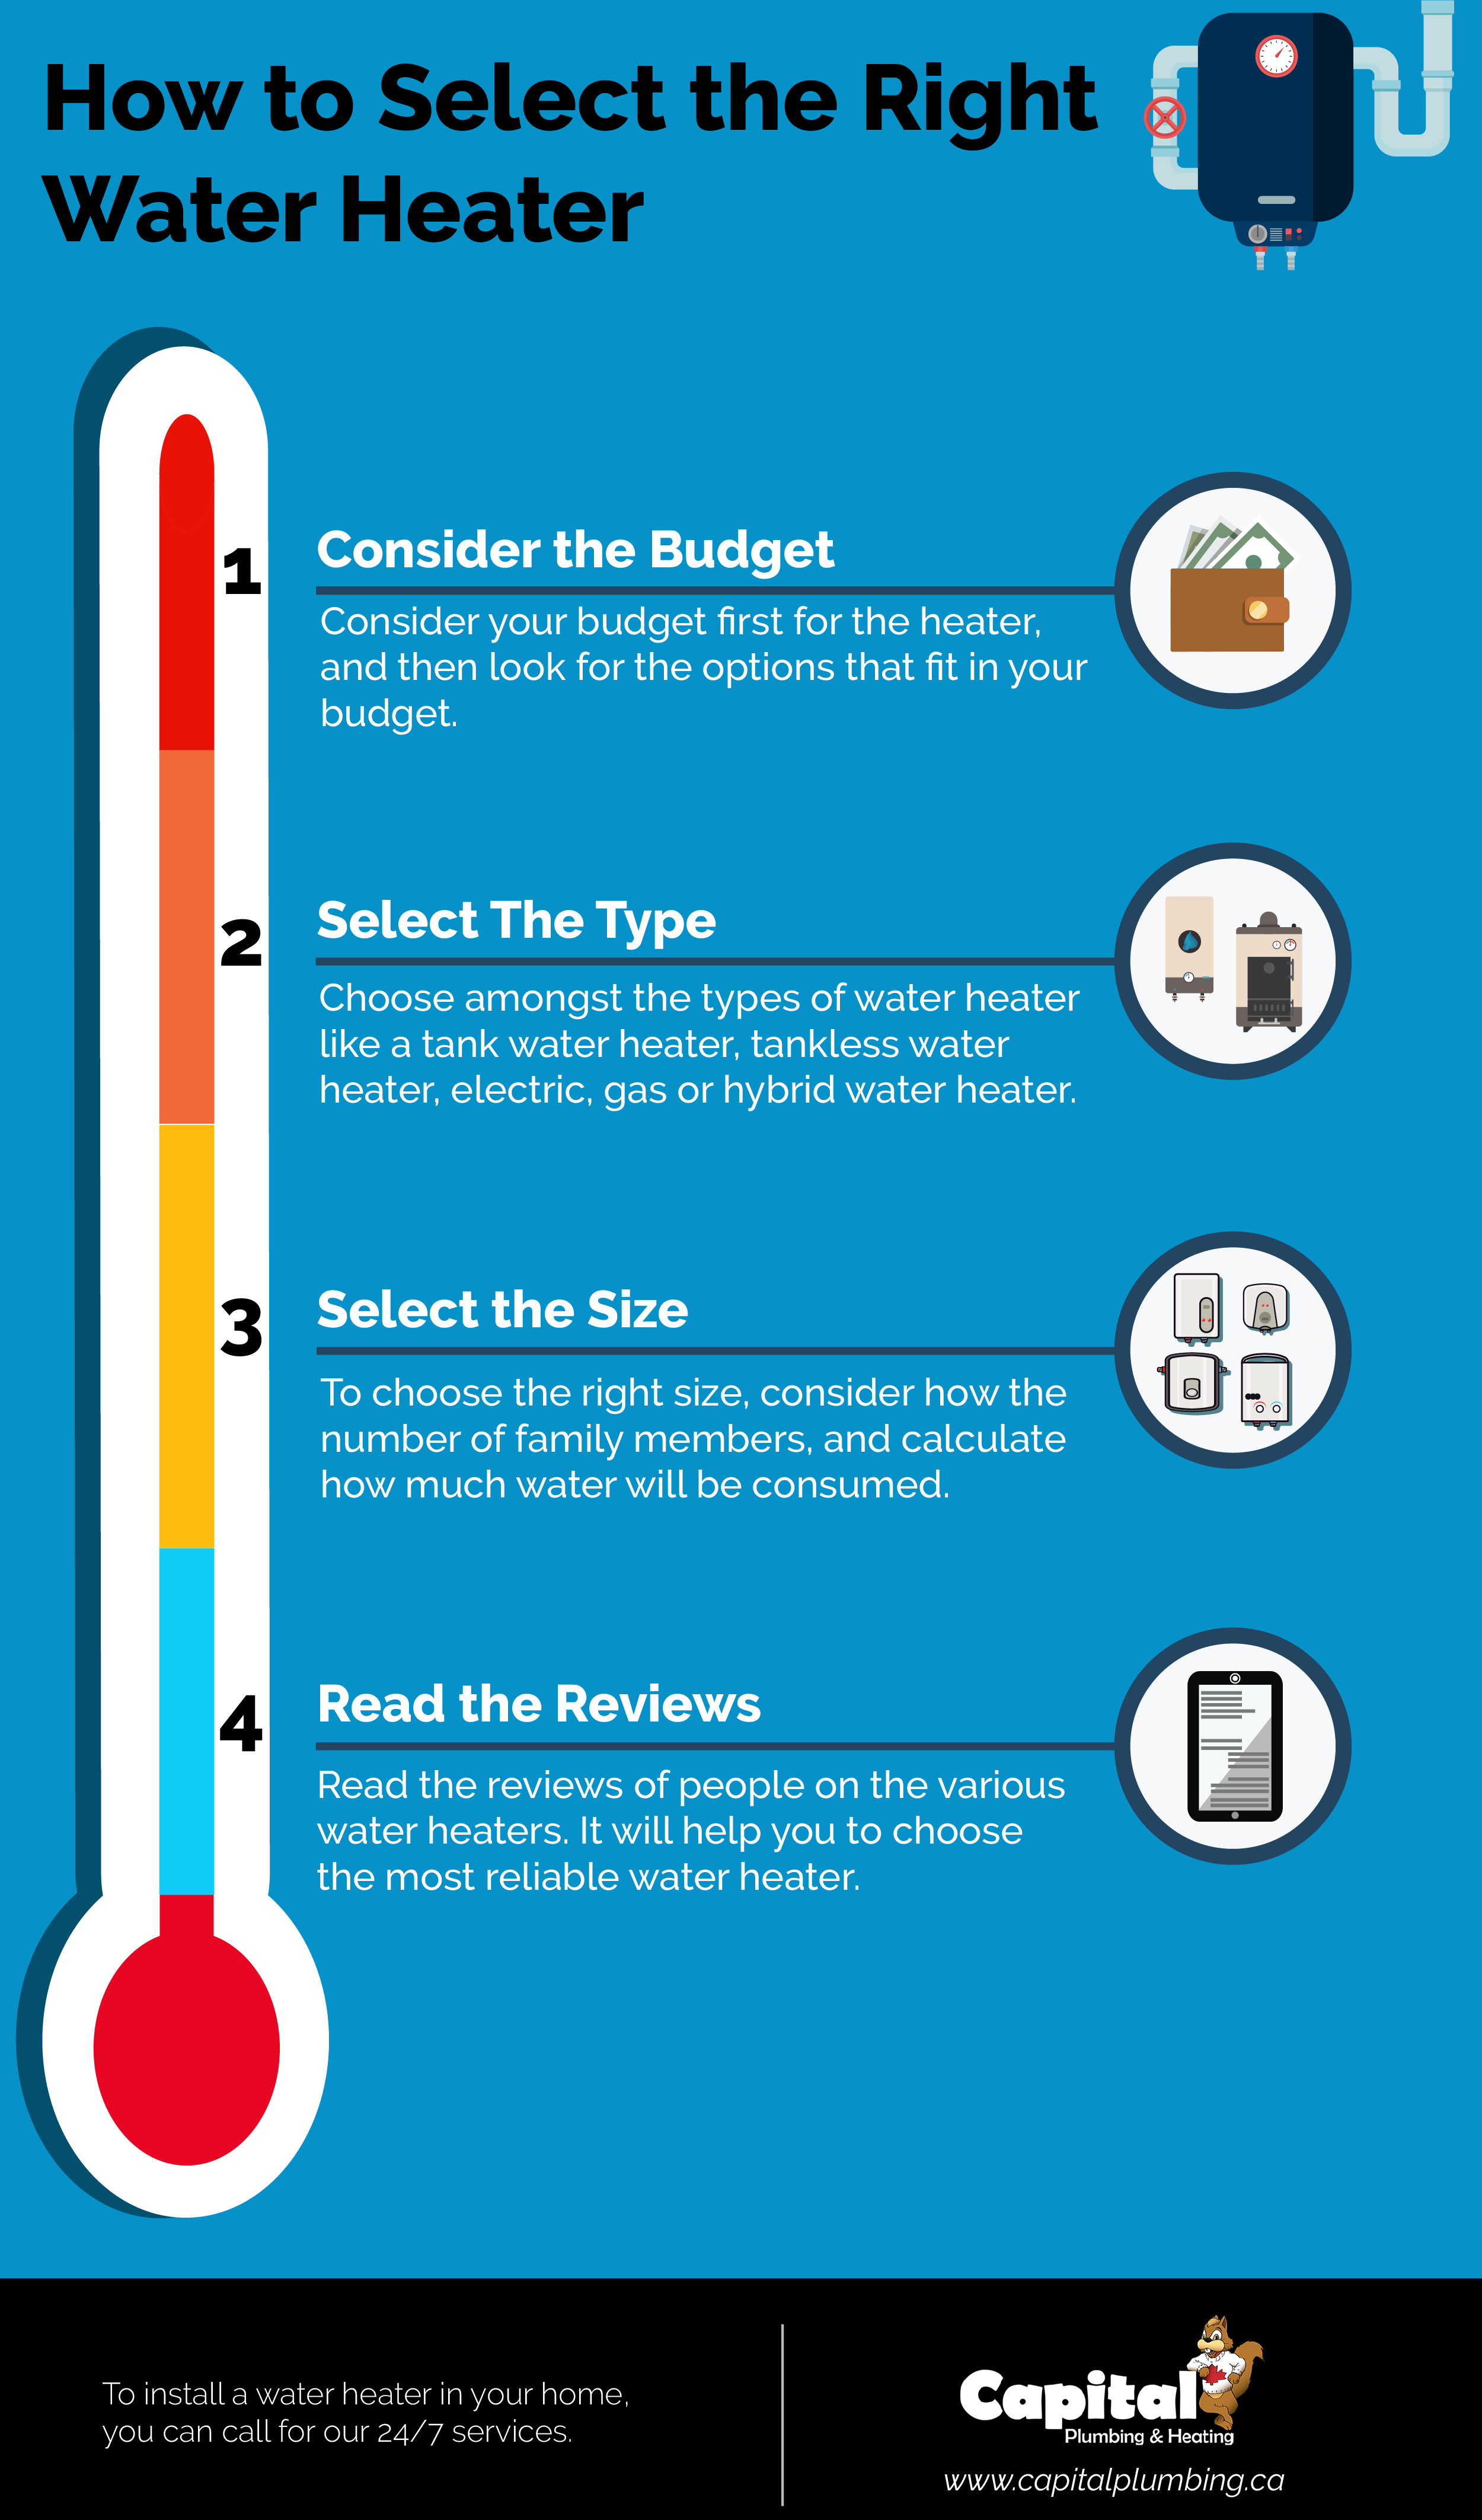 Select The Right Water Heater